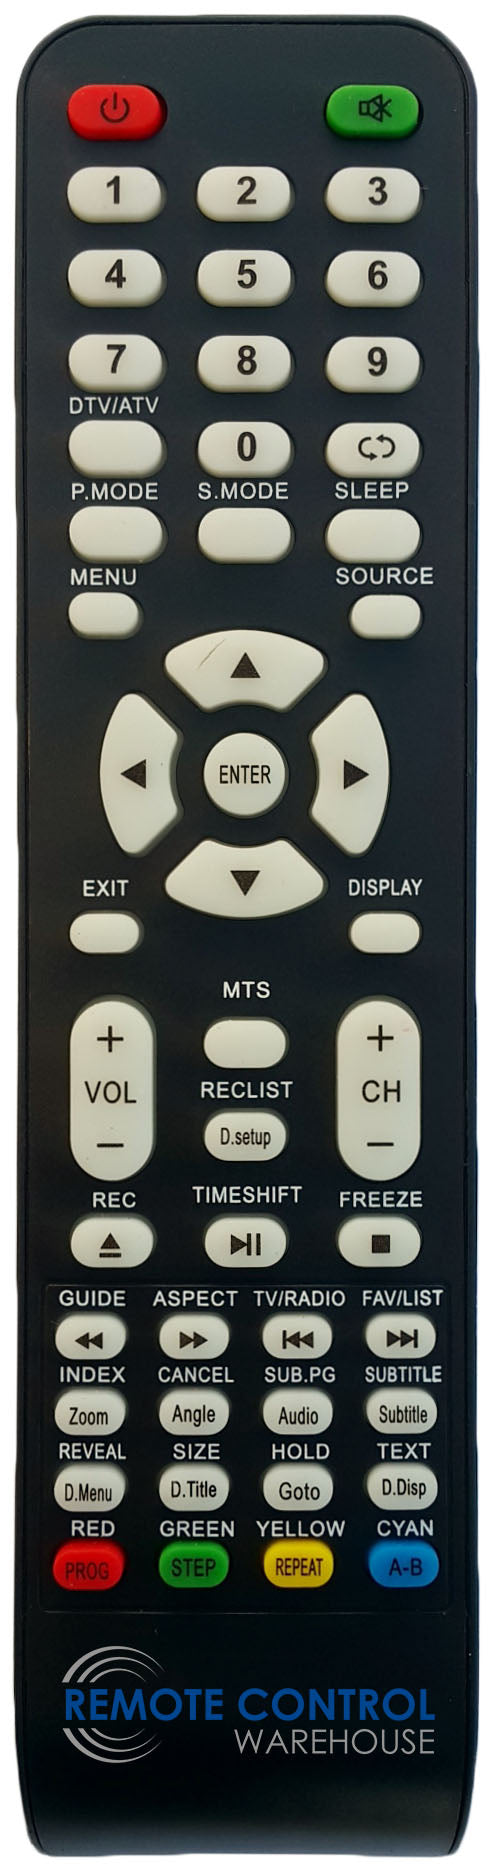 REPLACEMENT GVA REMOTE CONTROL FOR GVA  G18TVC15  TV - Remote Control Warehouse